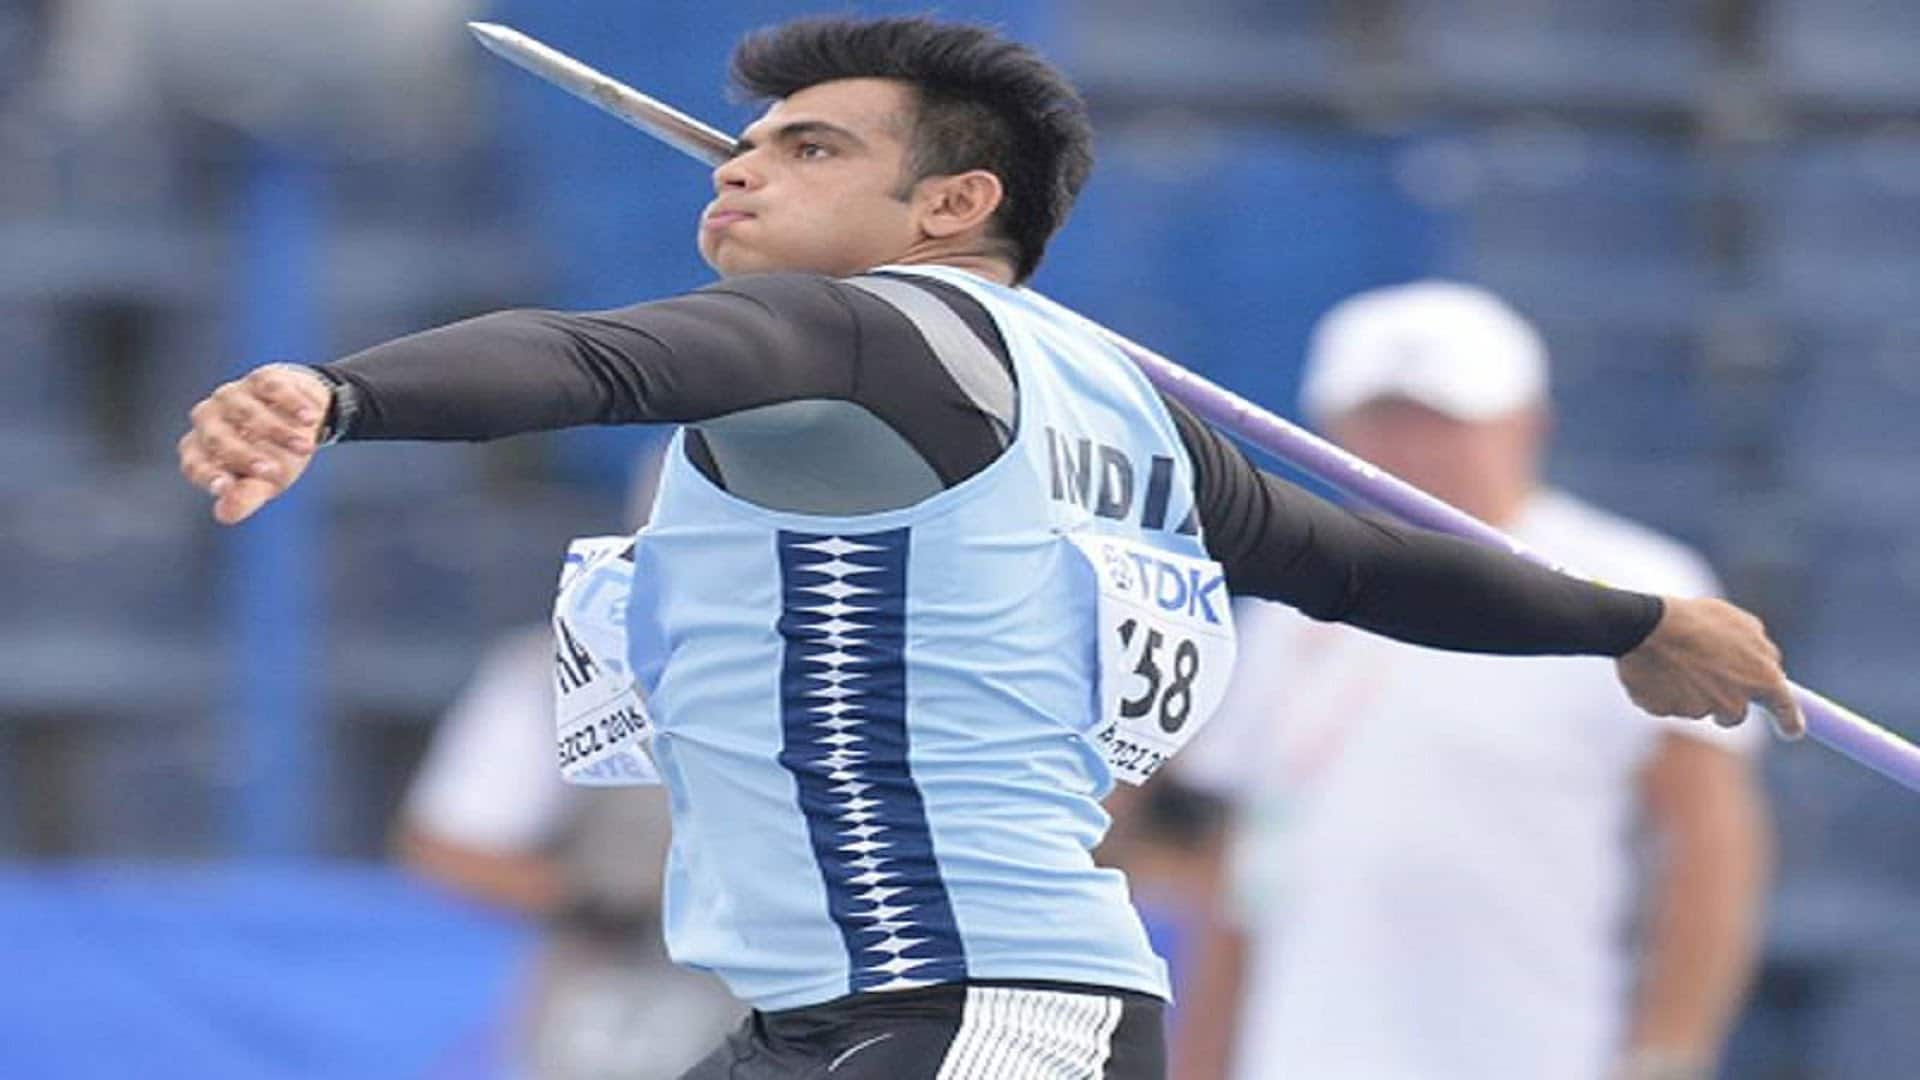 NEERAJ CHOPRA WINS GOLD MEDAL IN WORLD ATHELETICS MEET